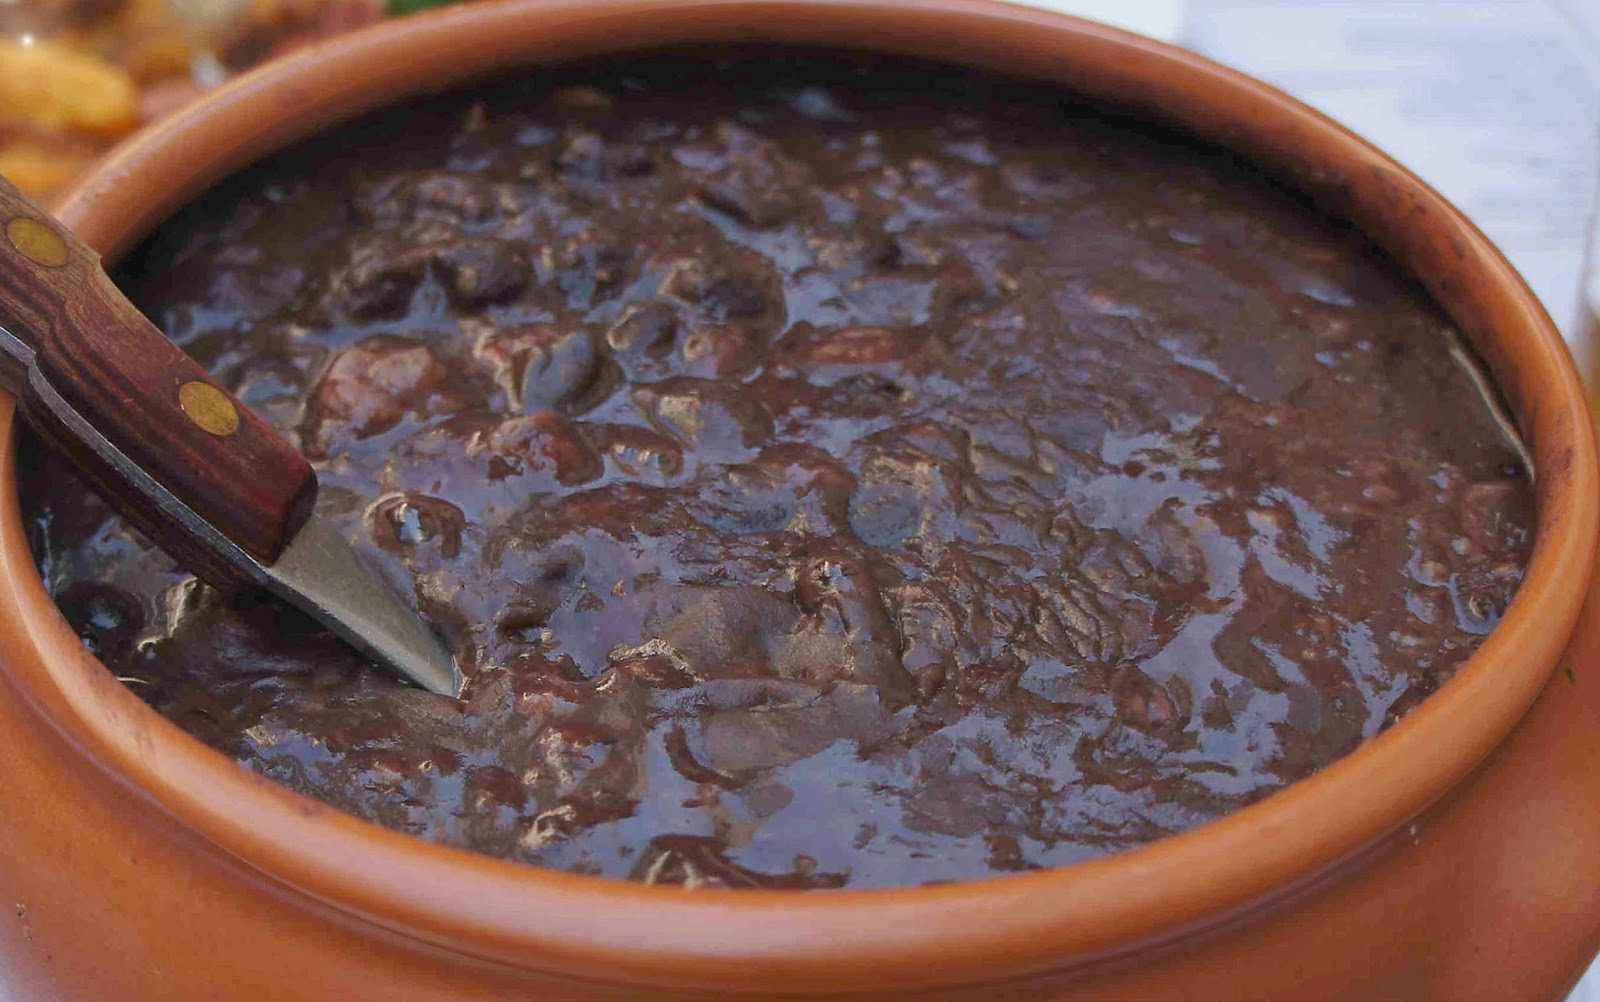 homemade-refried-black-beans-recipe-frijoles-negros-refritos